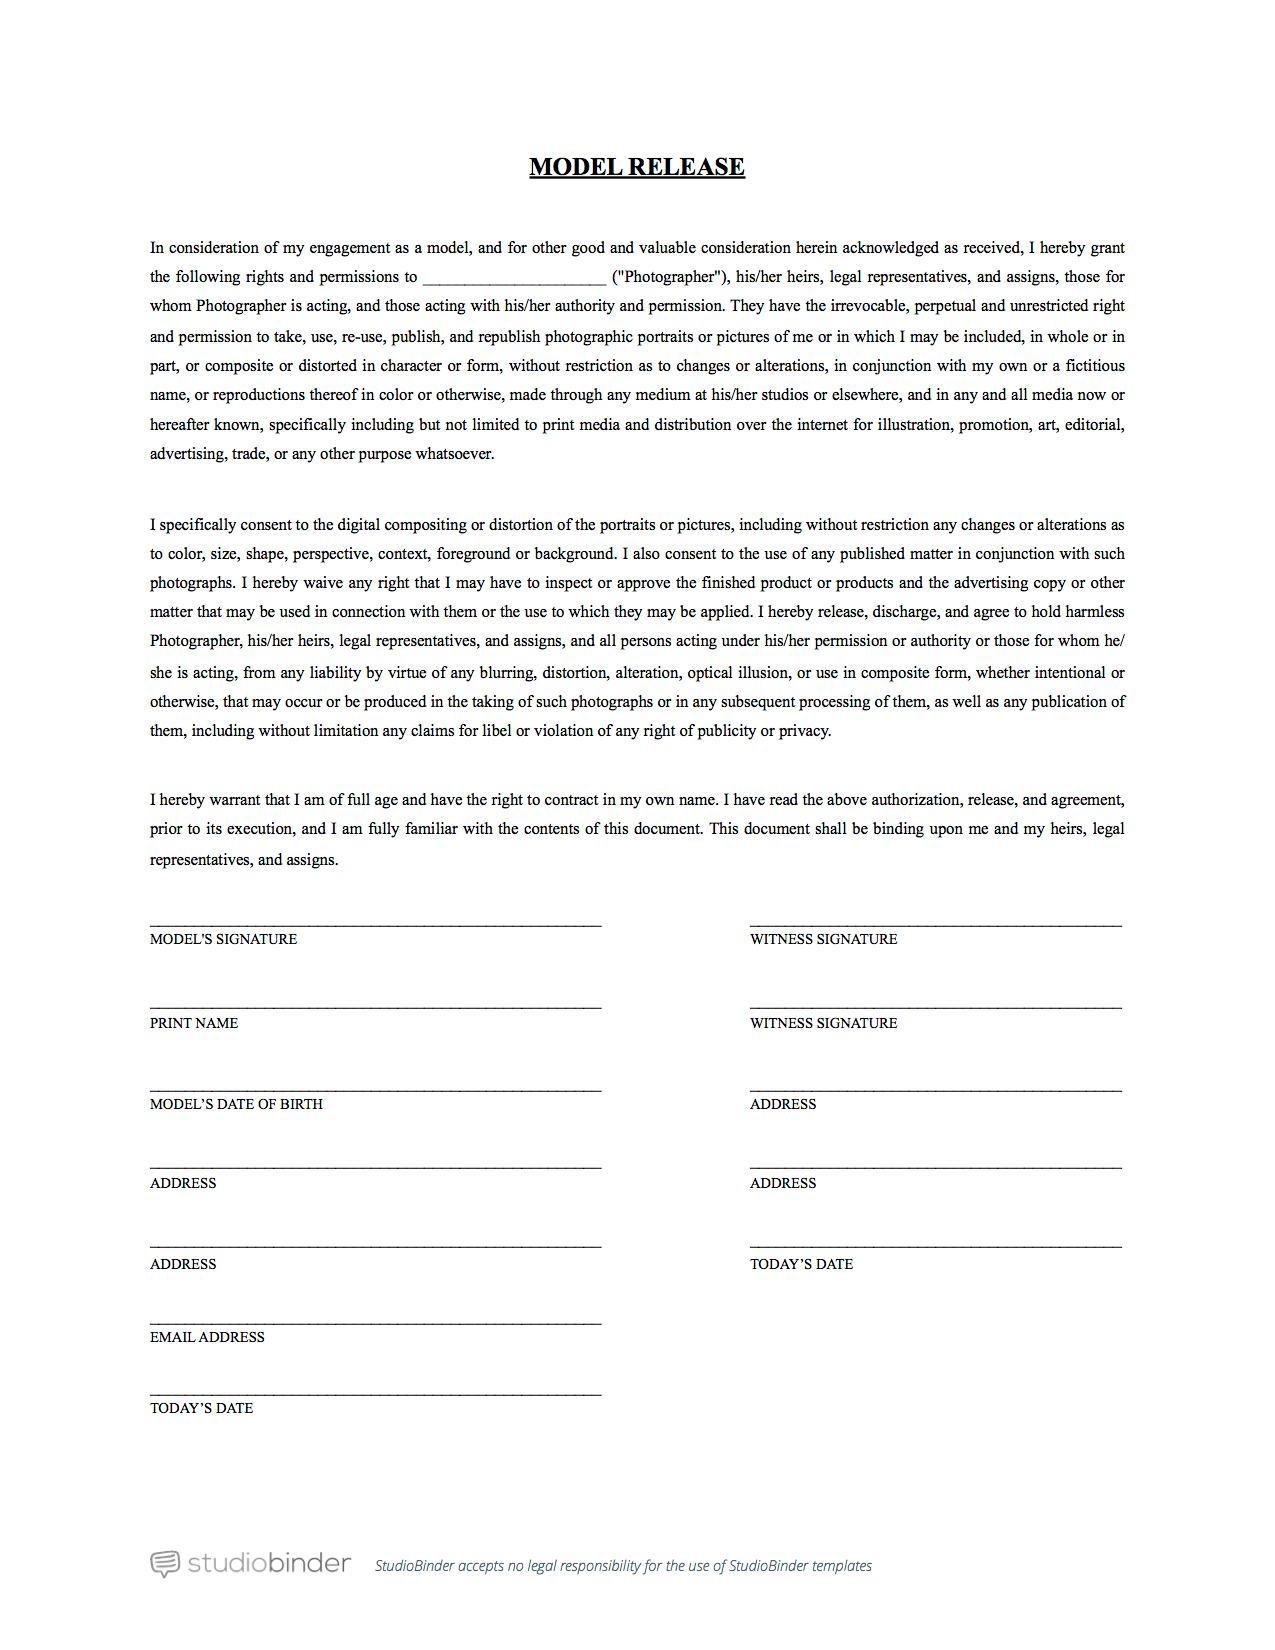 standard model release form template the best free model release form template for photography